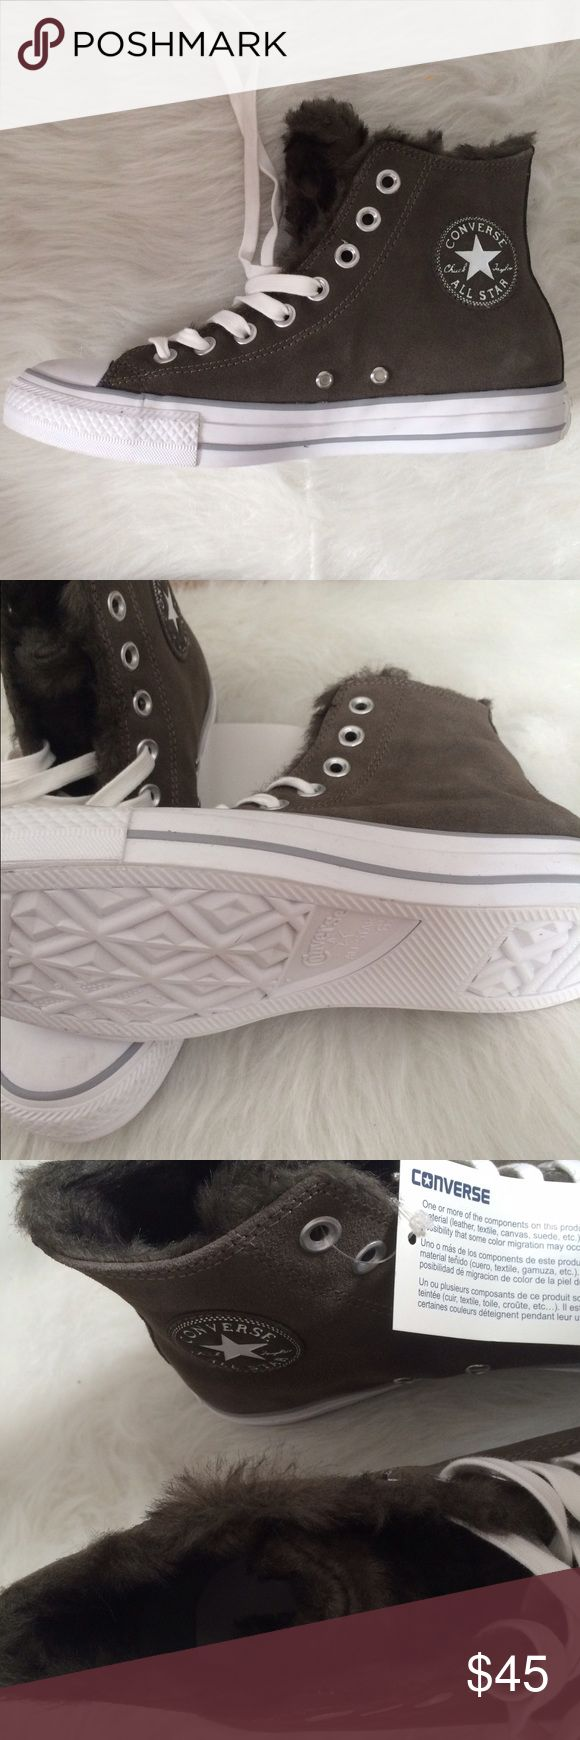 ❕1 HOUR SALE❕Converse women's 8.5 Chuck Taylor's No box Converse Shoes Sneakers